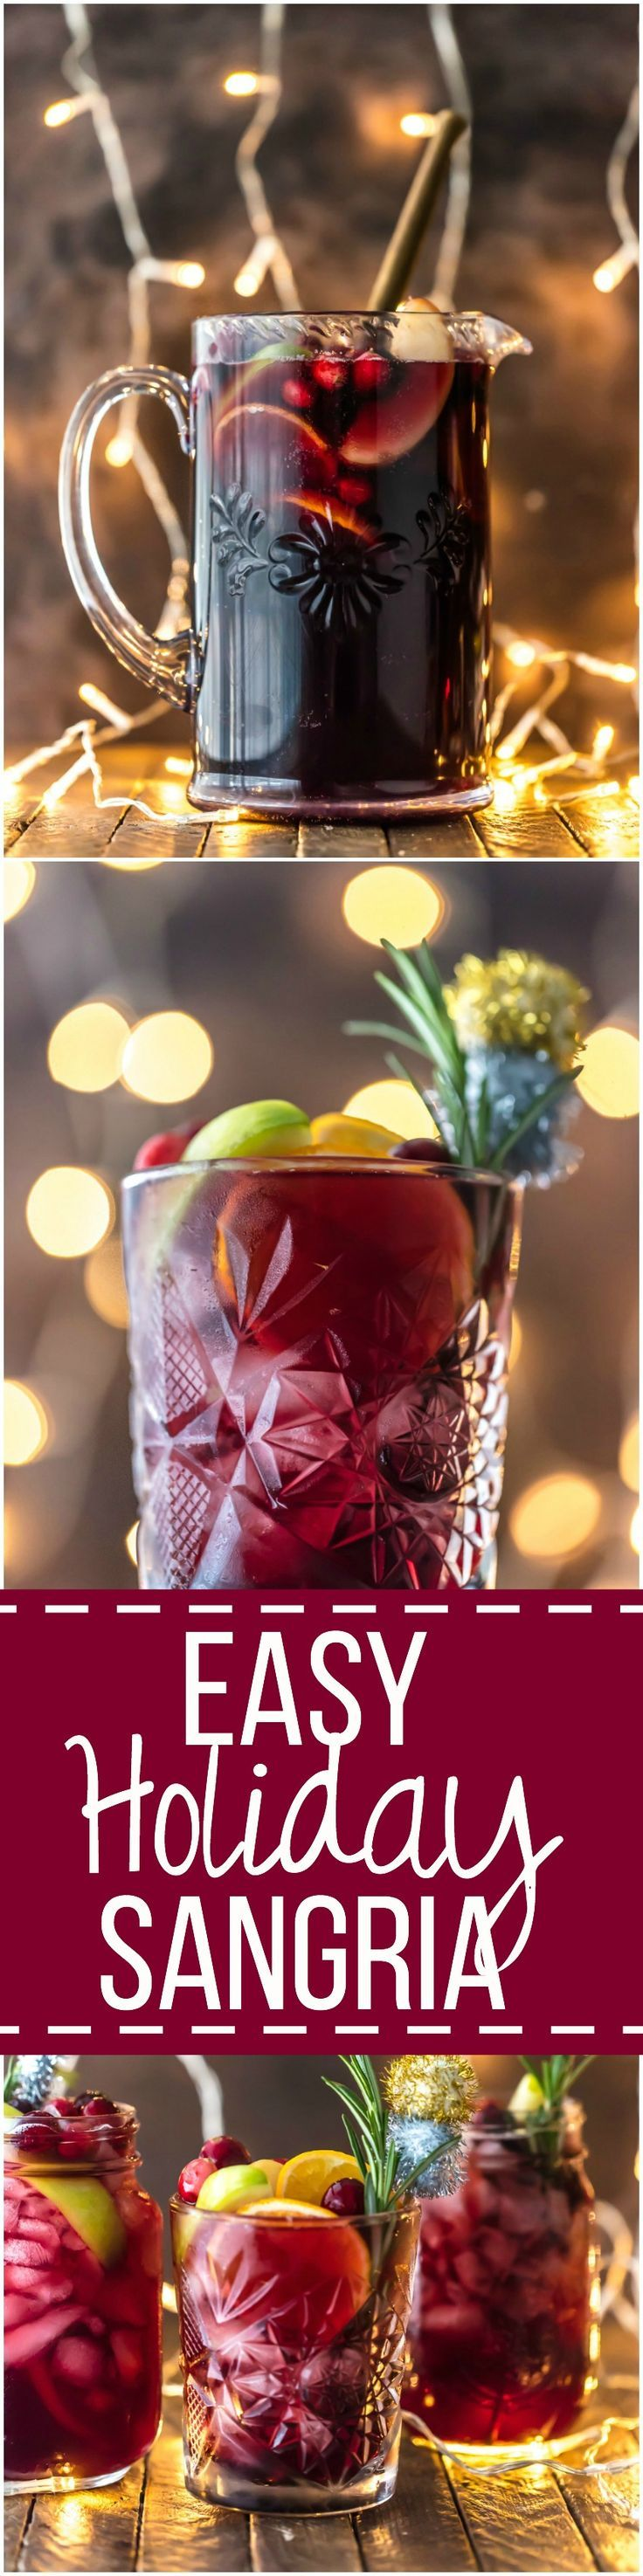 Easy Holiday Sangria - The perfect Christmas cocktail! Made with red wine, vodka, sparkling apple cider, and several juices; you'll be the star of any holiday party. | The Cookie Rookie